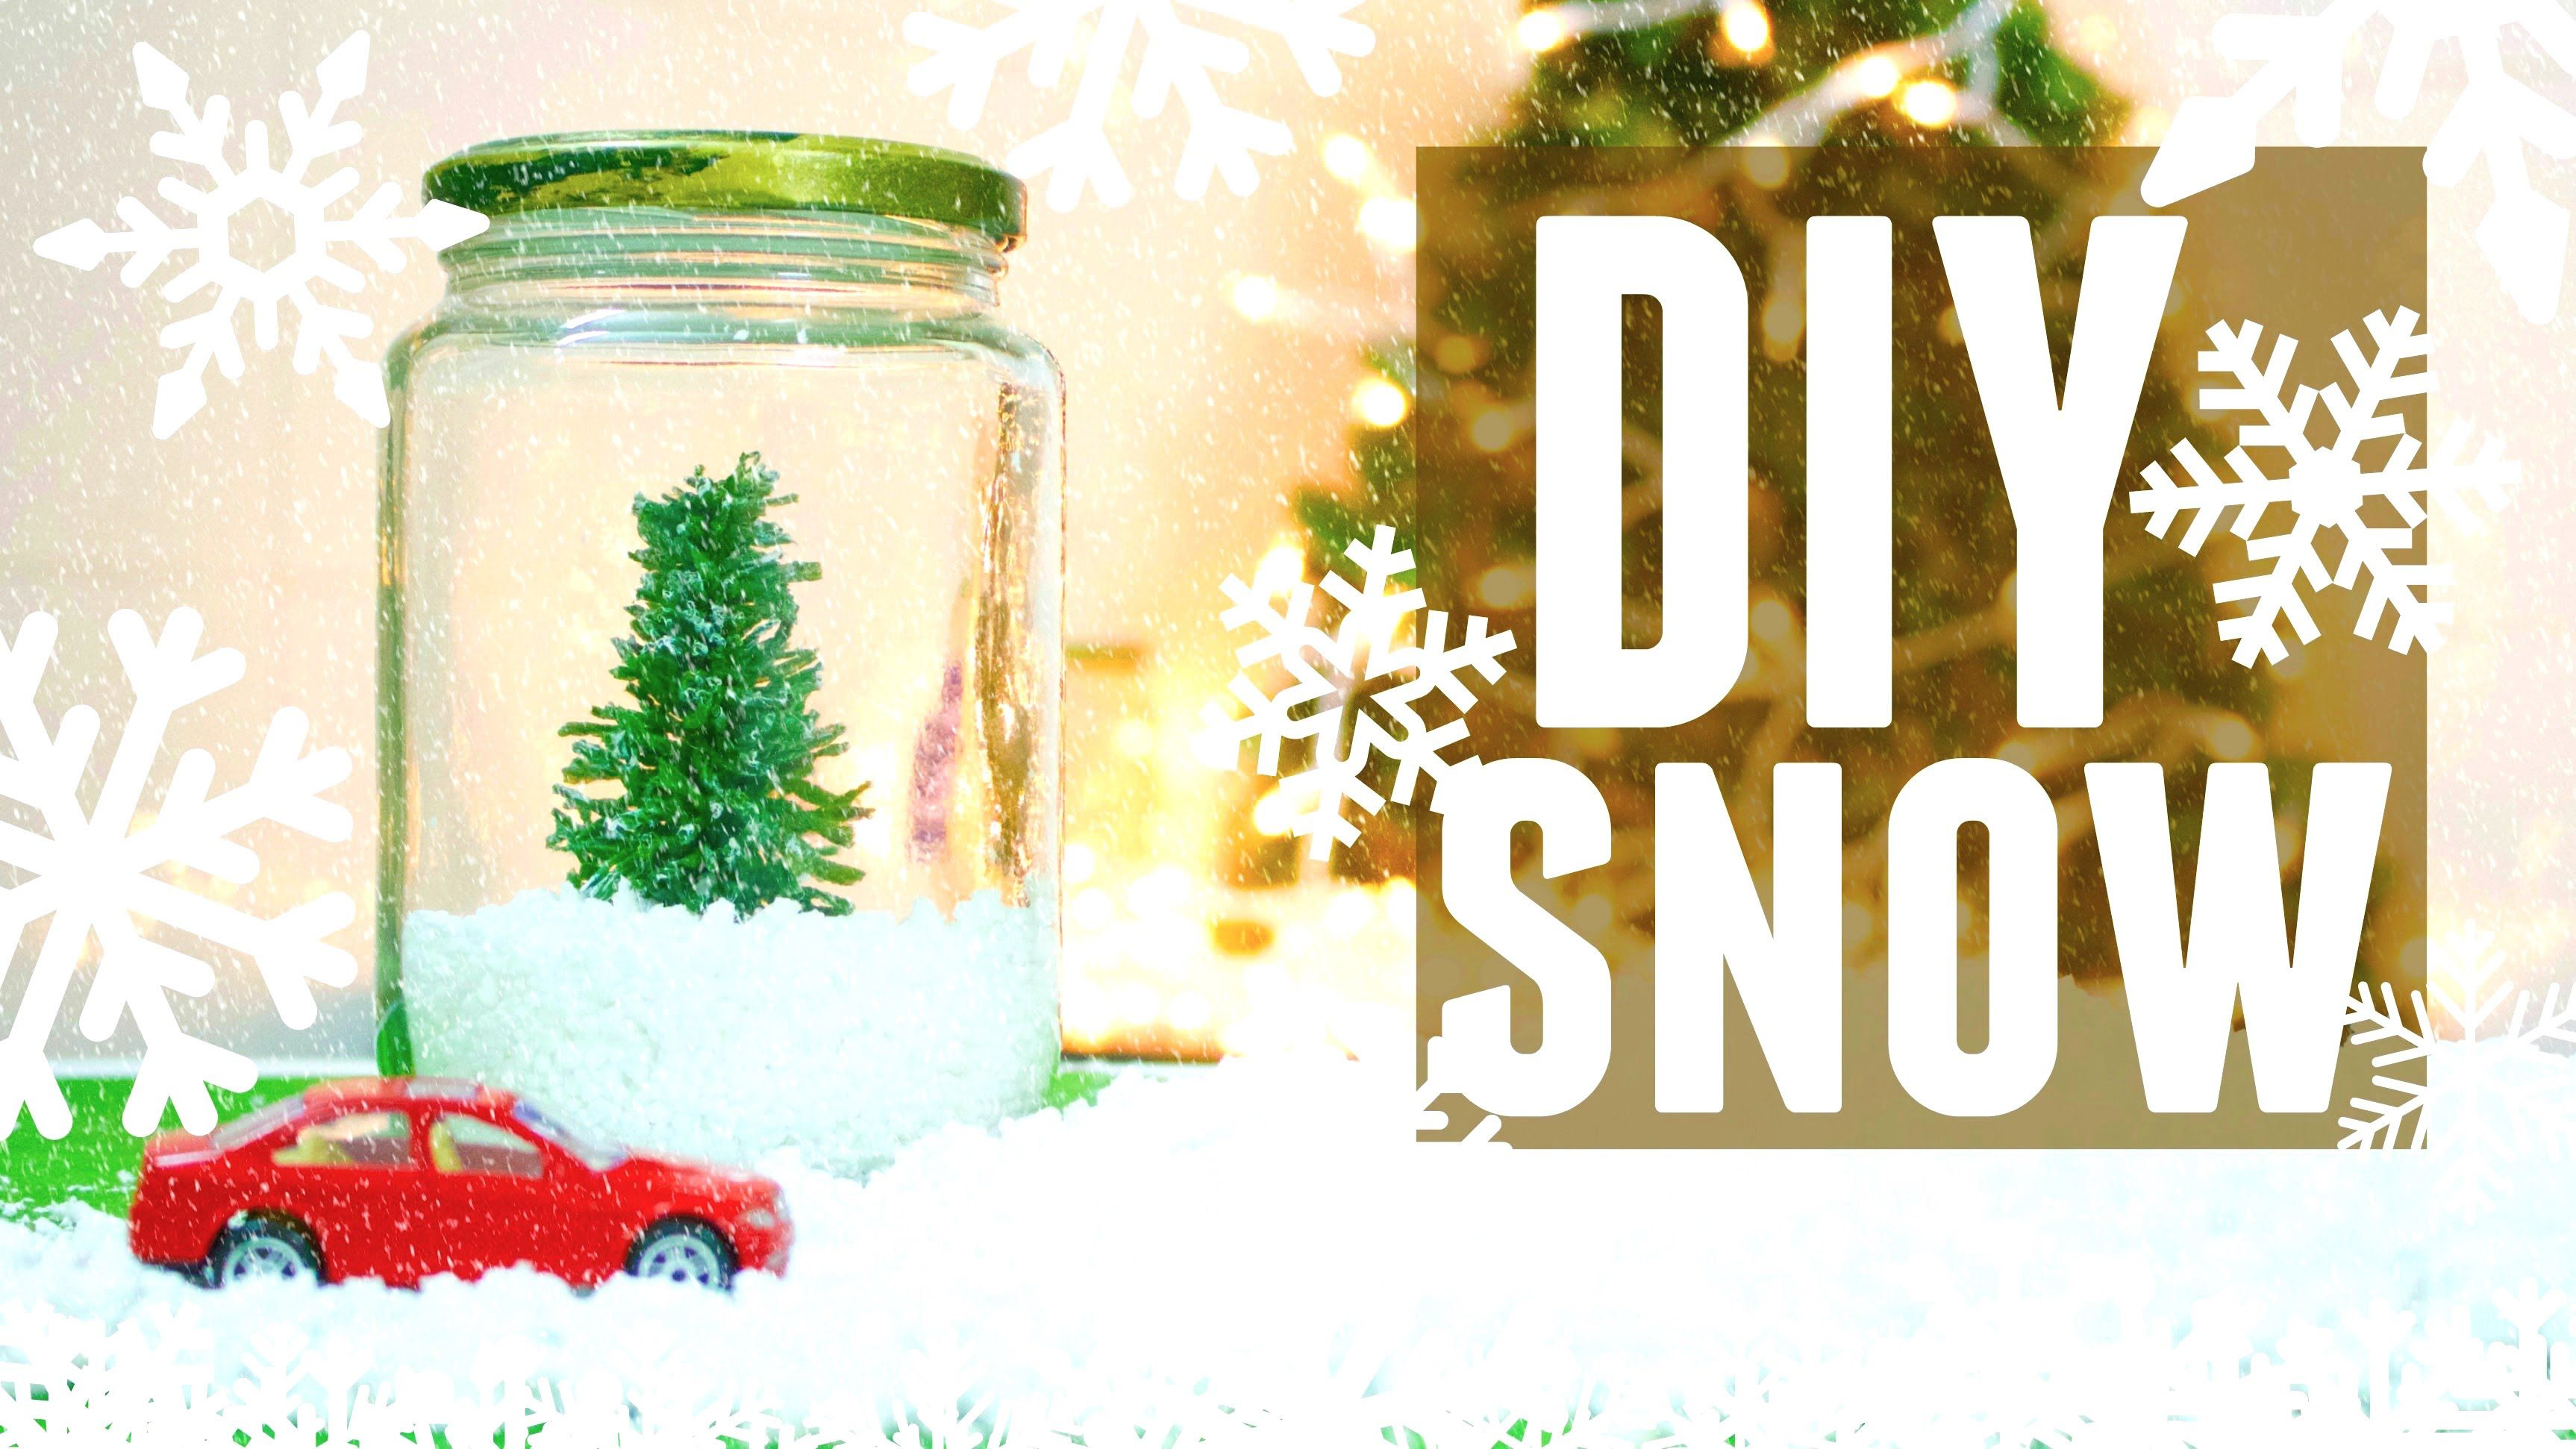 How To Make Fake Snow For Christmas Decorations - Diy